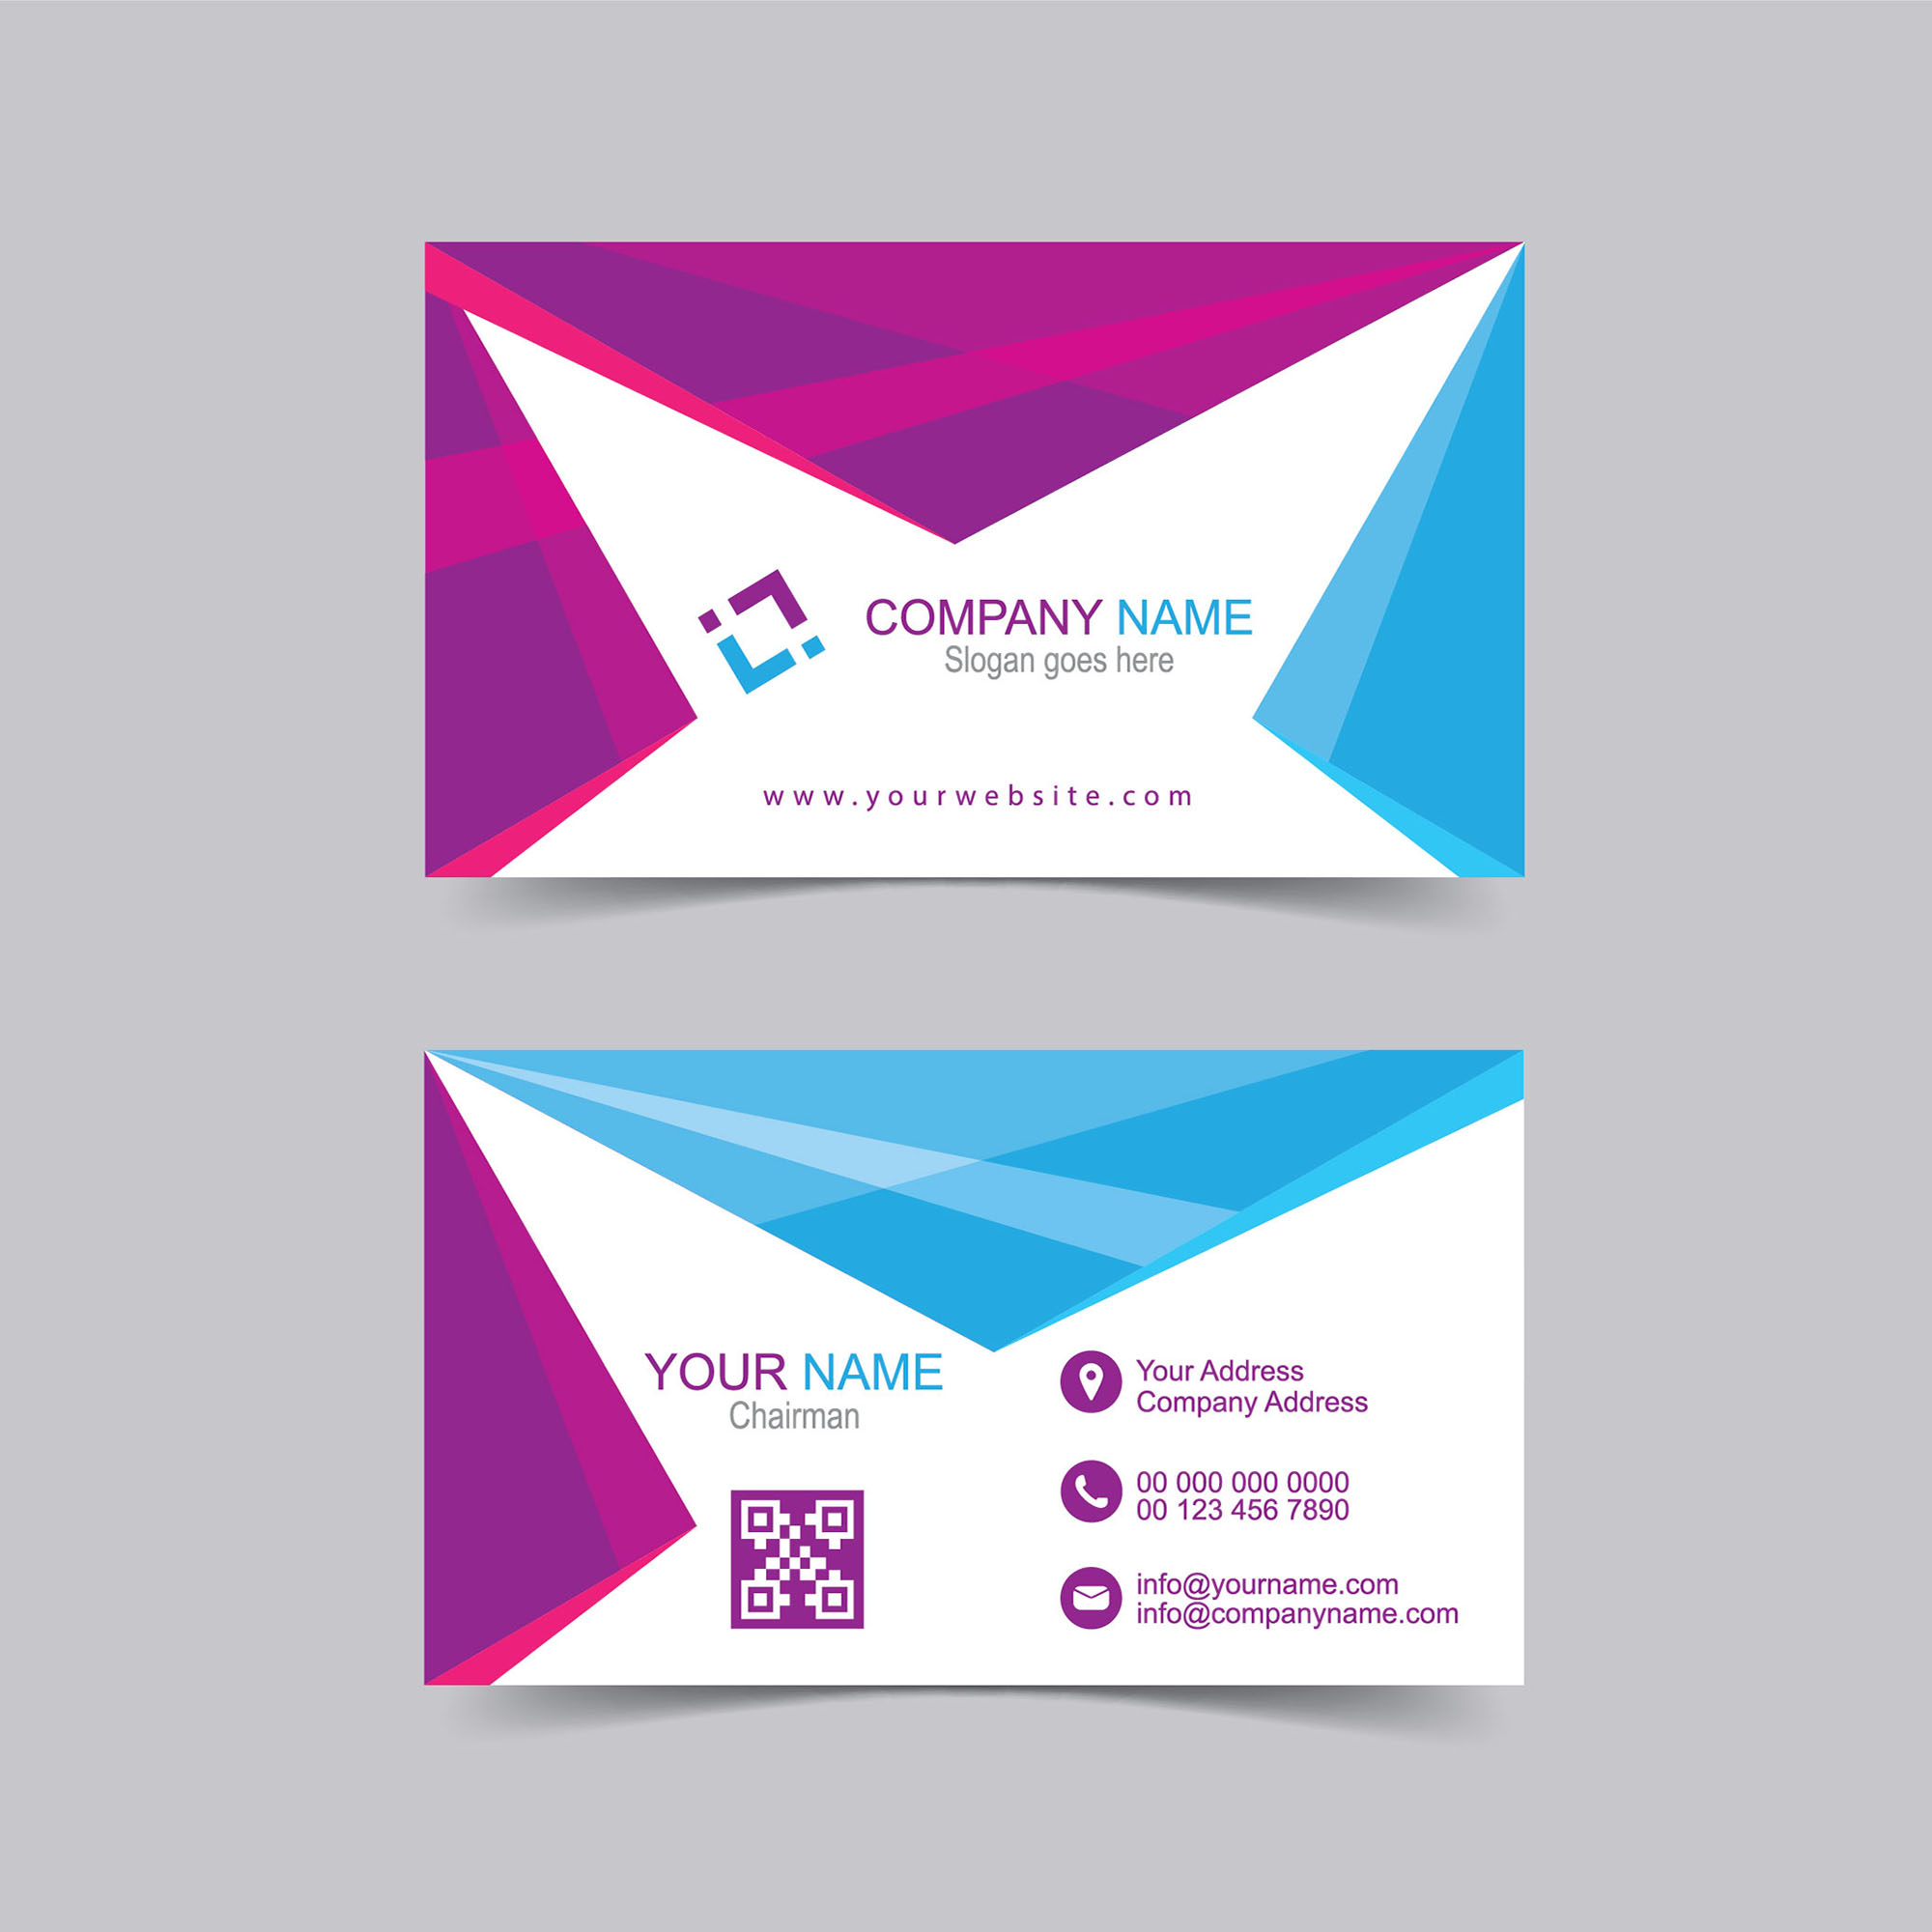 Visiting card vector template free download wisxi business card business cards business card design business card template design templates cheaphphosting Image collections